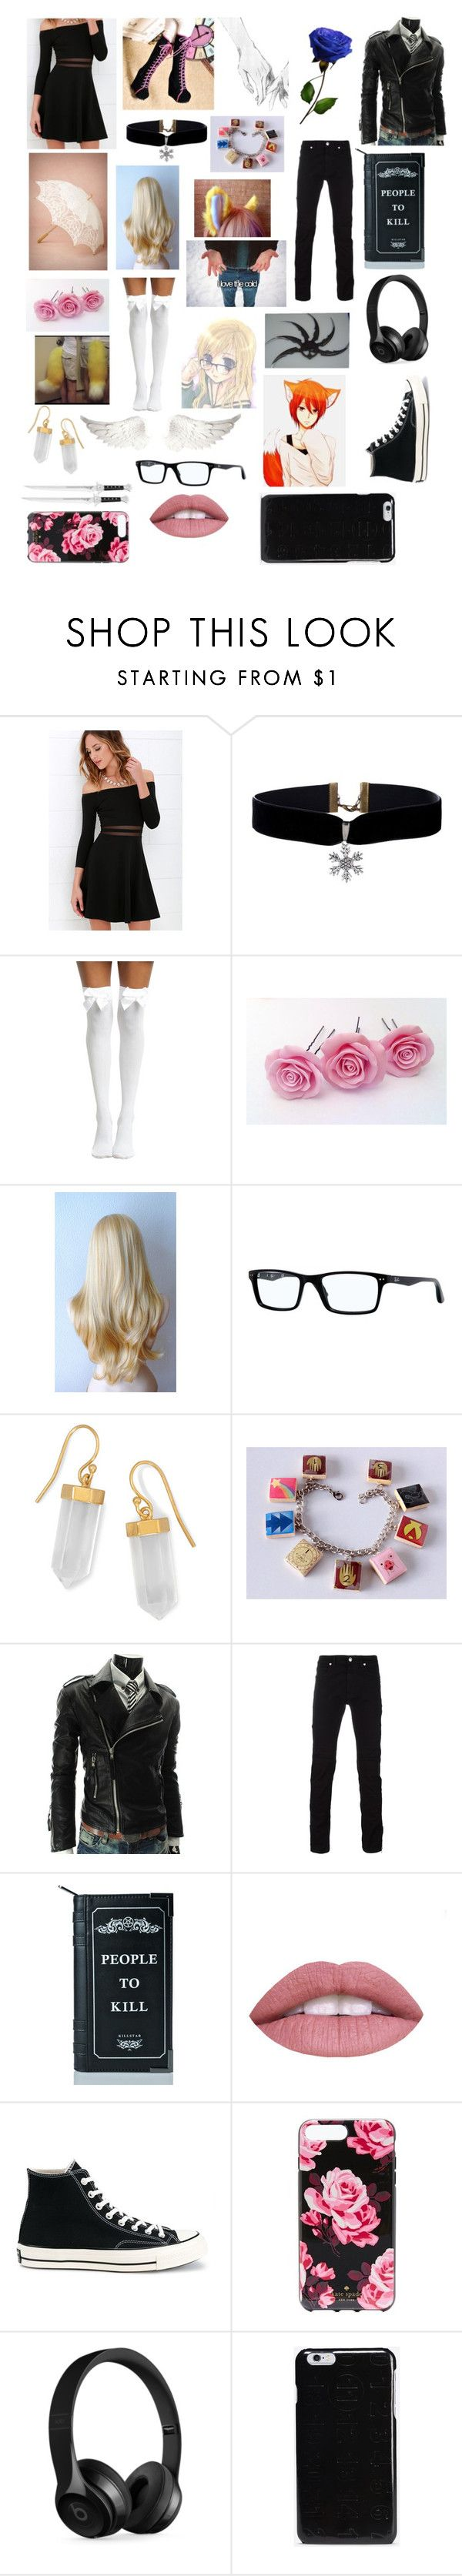 """A Charcus Movie Date~"" by fashion-anime-animals-reading ❤ liked on Polyvore featuring Betsey Johnson, LULUS, Ray-Ban, BillyTheTree, Versace, Killstar, Converse, Kate Spade, Beats by Dr. Dre and Maison Margiela"